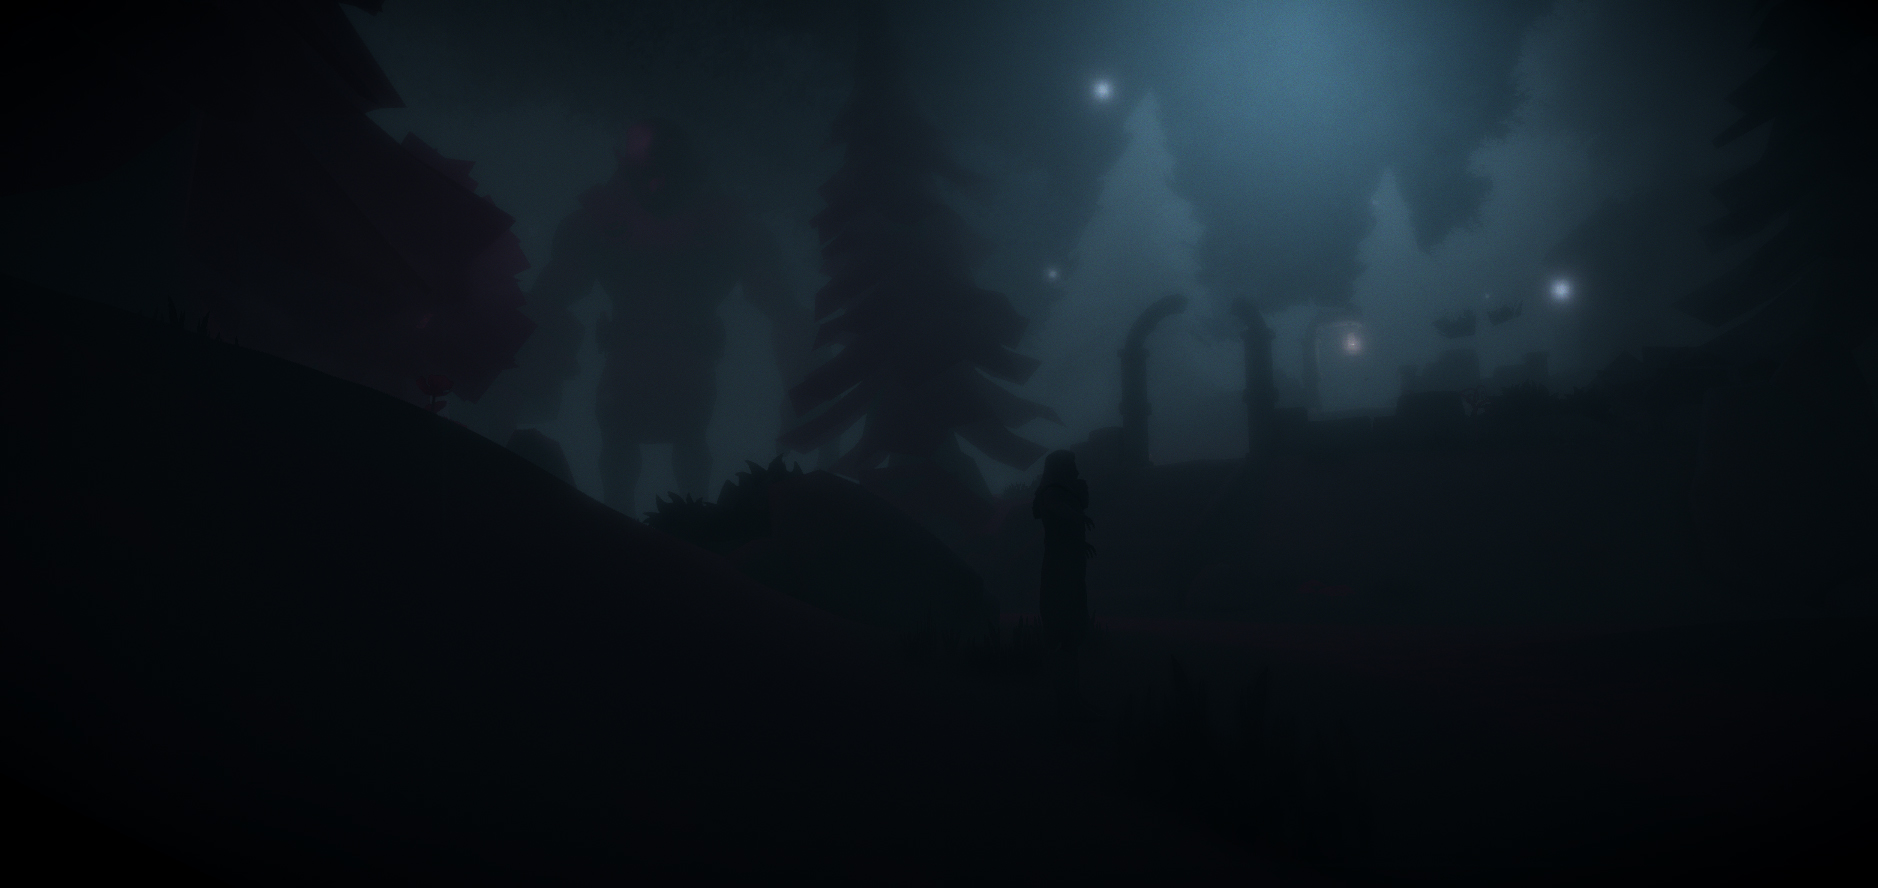 Silhouette Lighting and Atmosphere (Level Design)